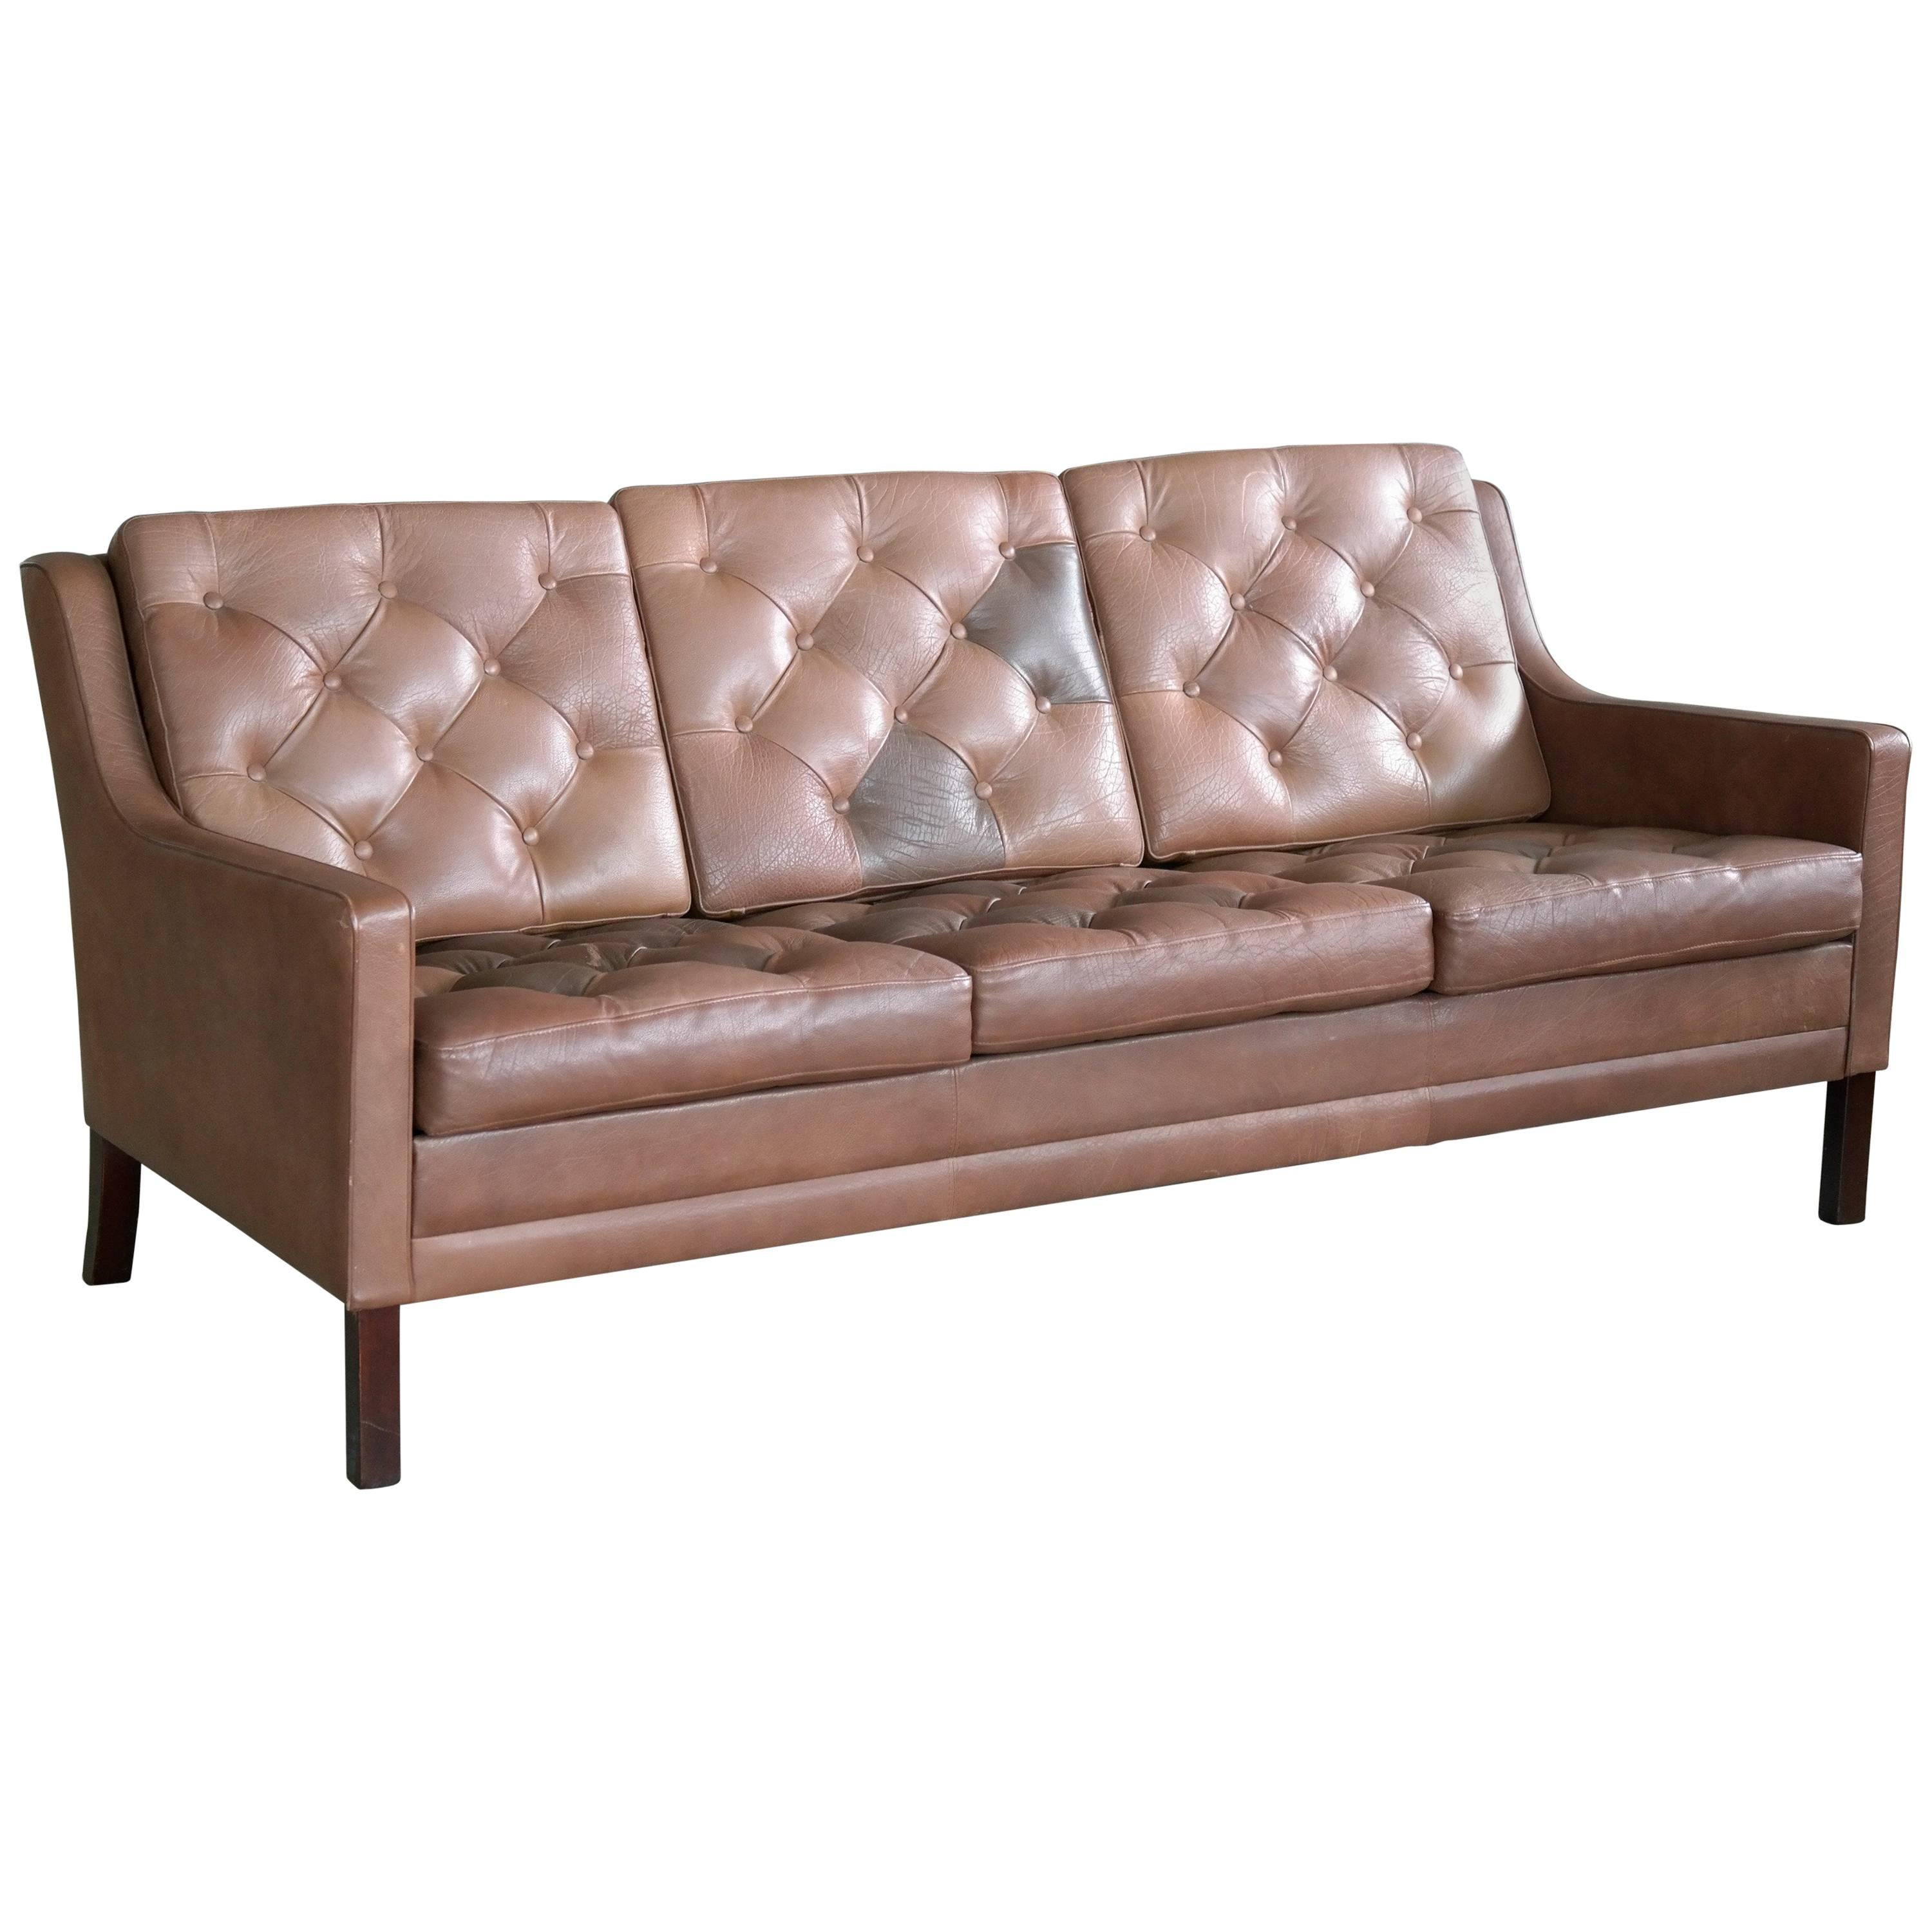 Delightful Sven Skipper Style Classic Danish Brown Leather Sofa By Georg Thams, 1960s  For Sale